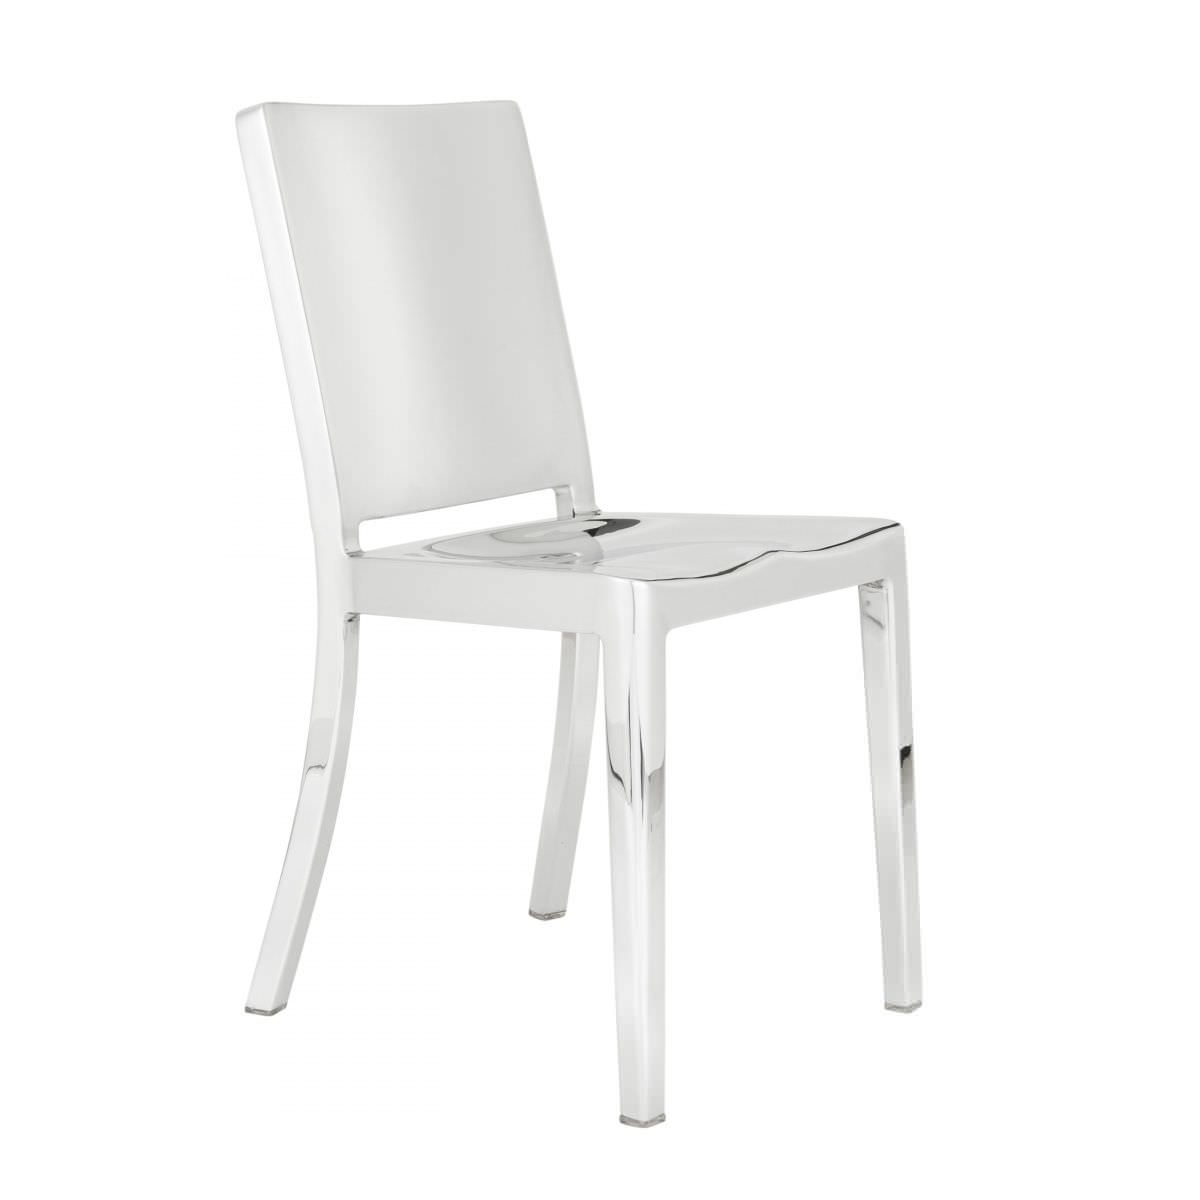 Superior Contemporary Chair / Aluminum / By Philippe Starck   HUDSON : HUD P Good Looking